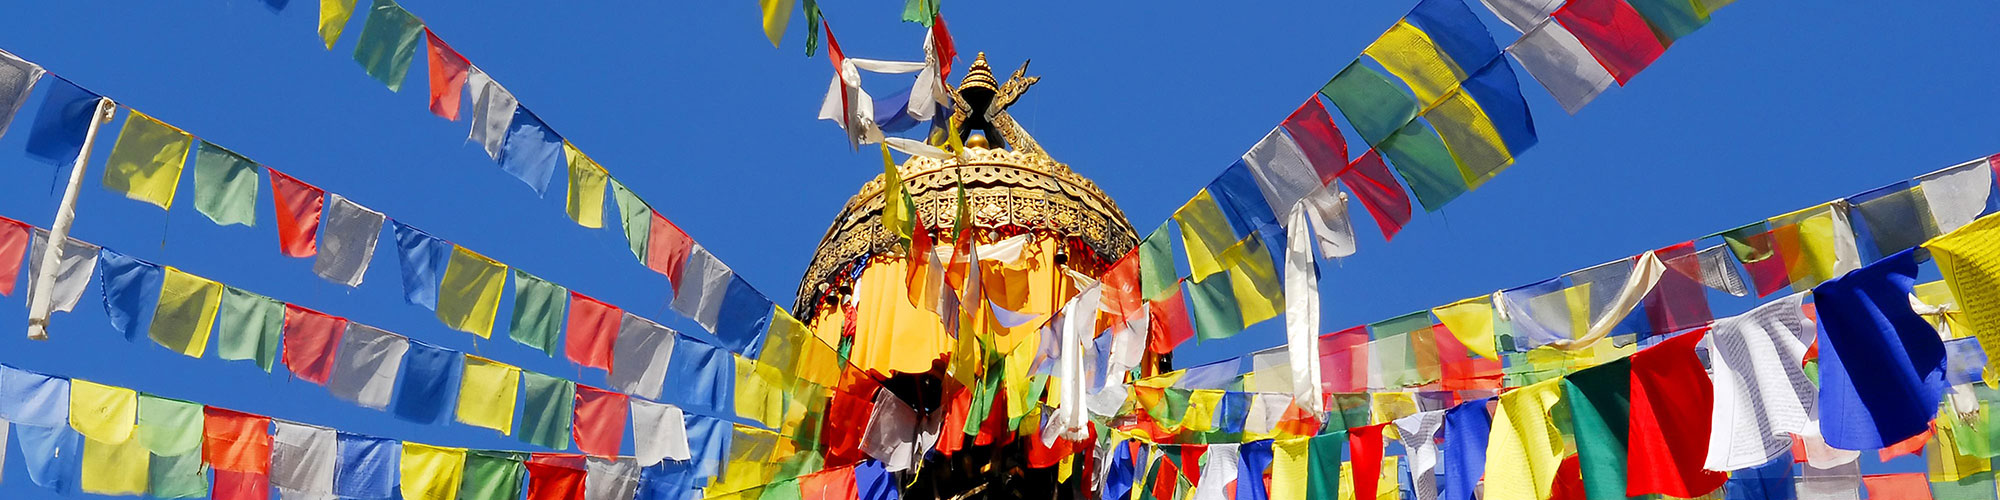 Nepalese Temple with Colored Flags